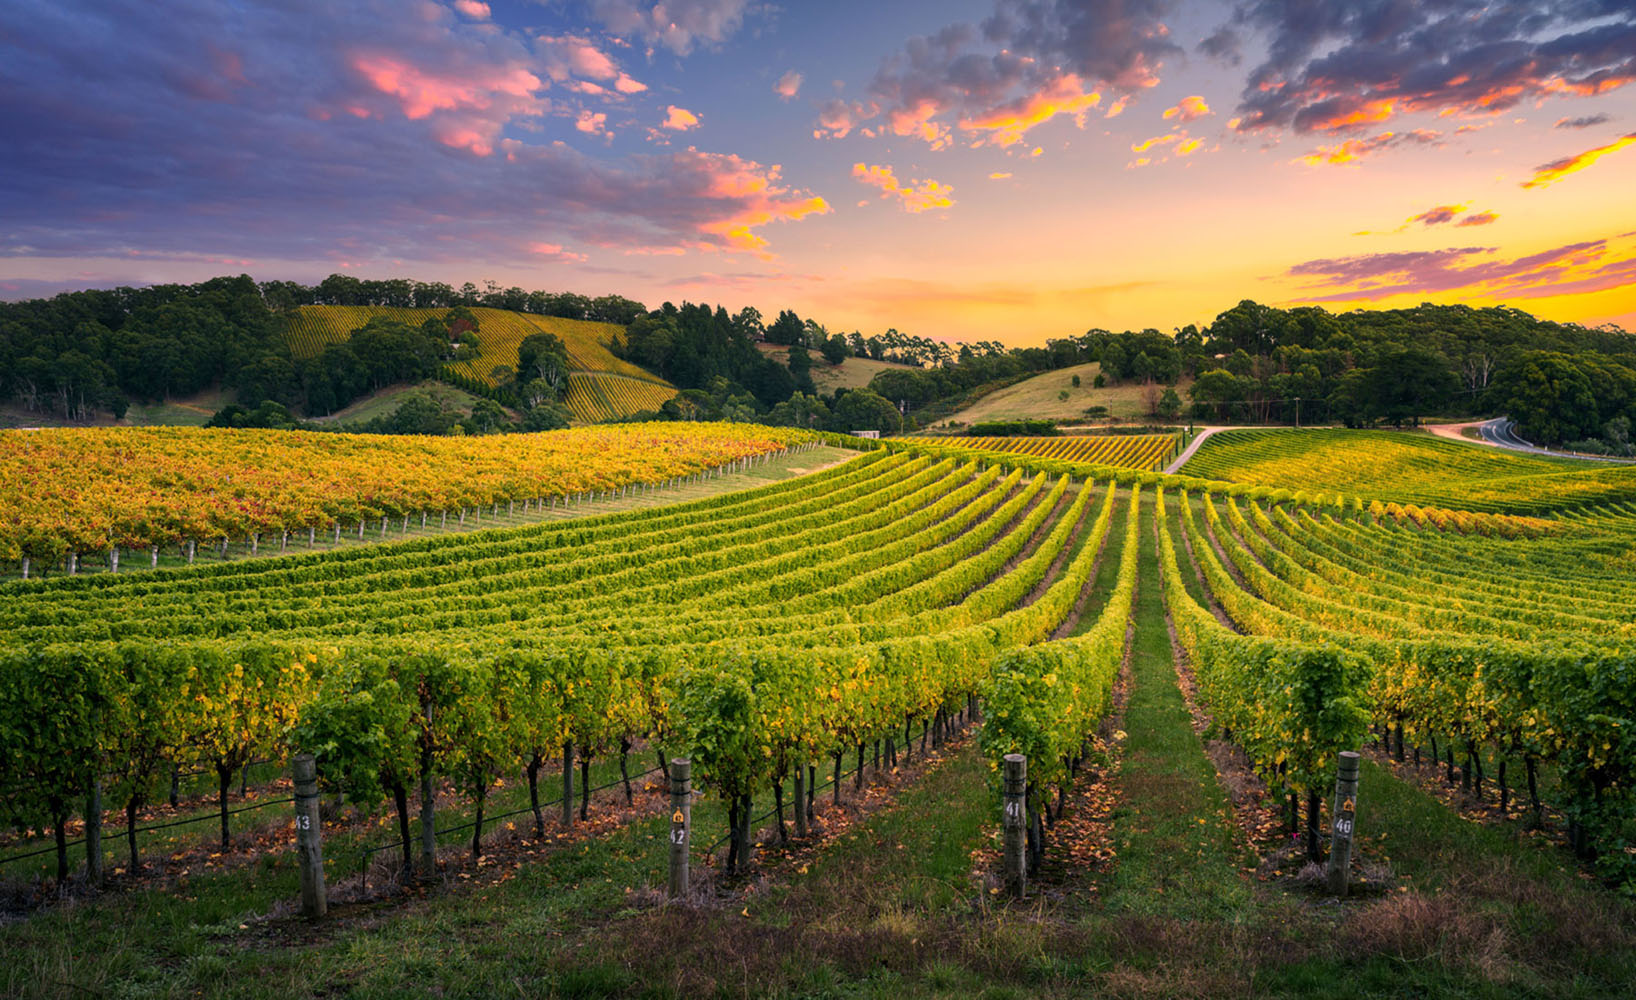 Vineyard at sunset in the Adelaide Hills of Australia